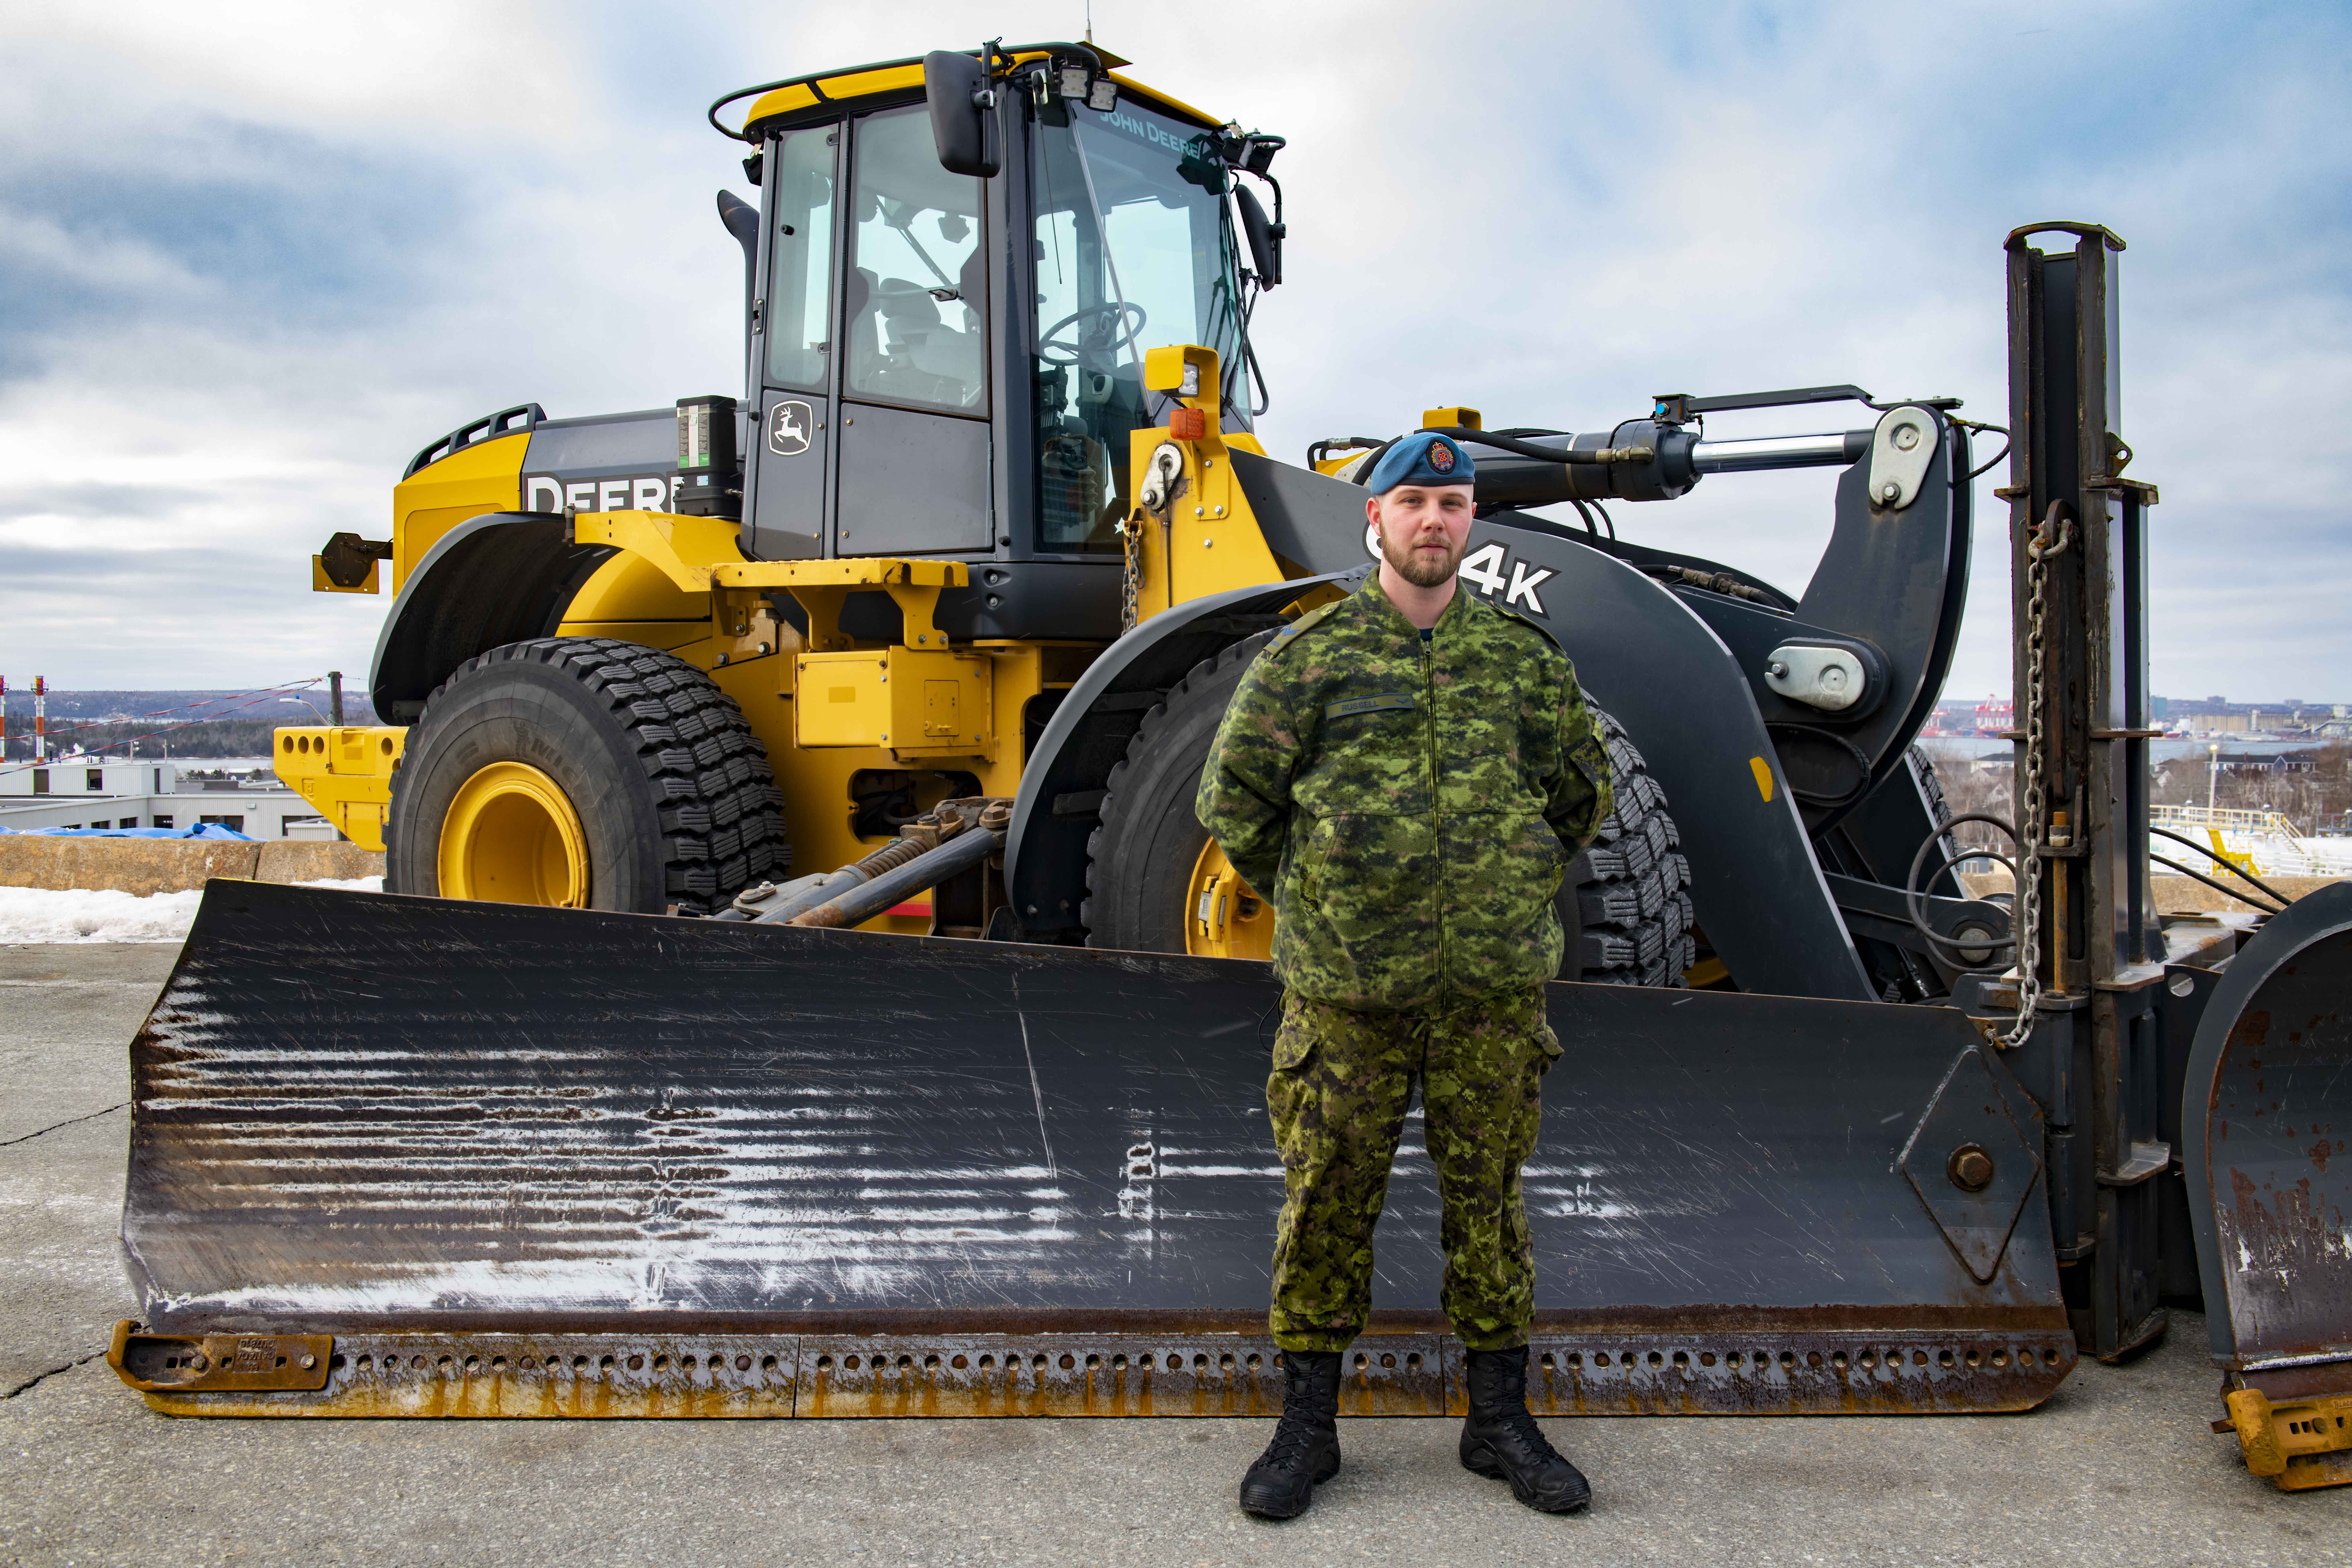 A man wearing a disruptive pattern uniform stands in front of a large heavy-equipment vehicle with a blade on the front.